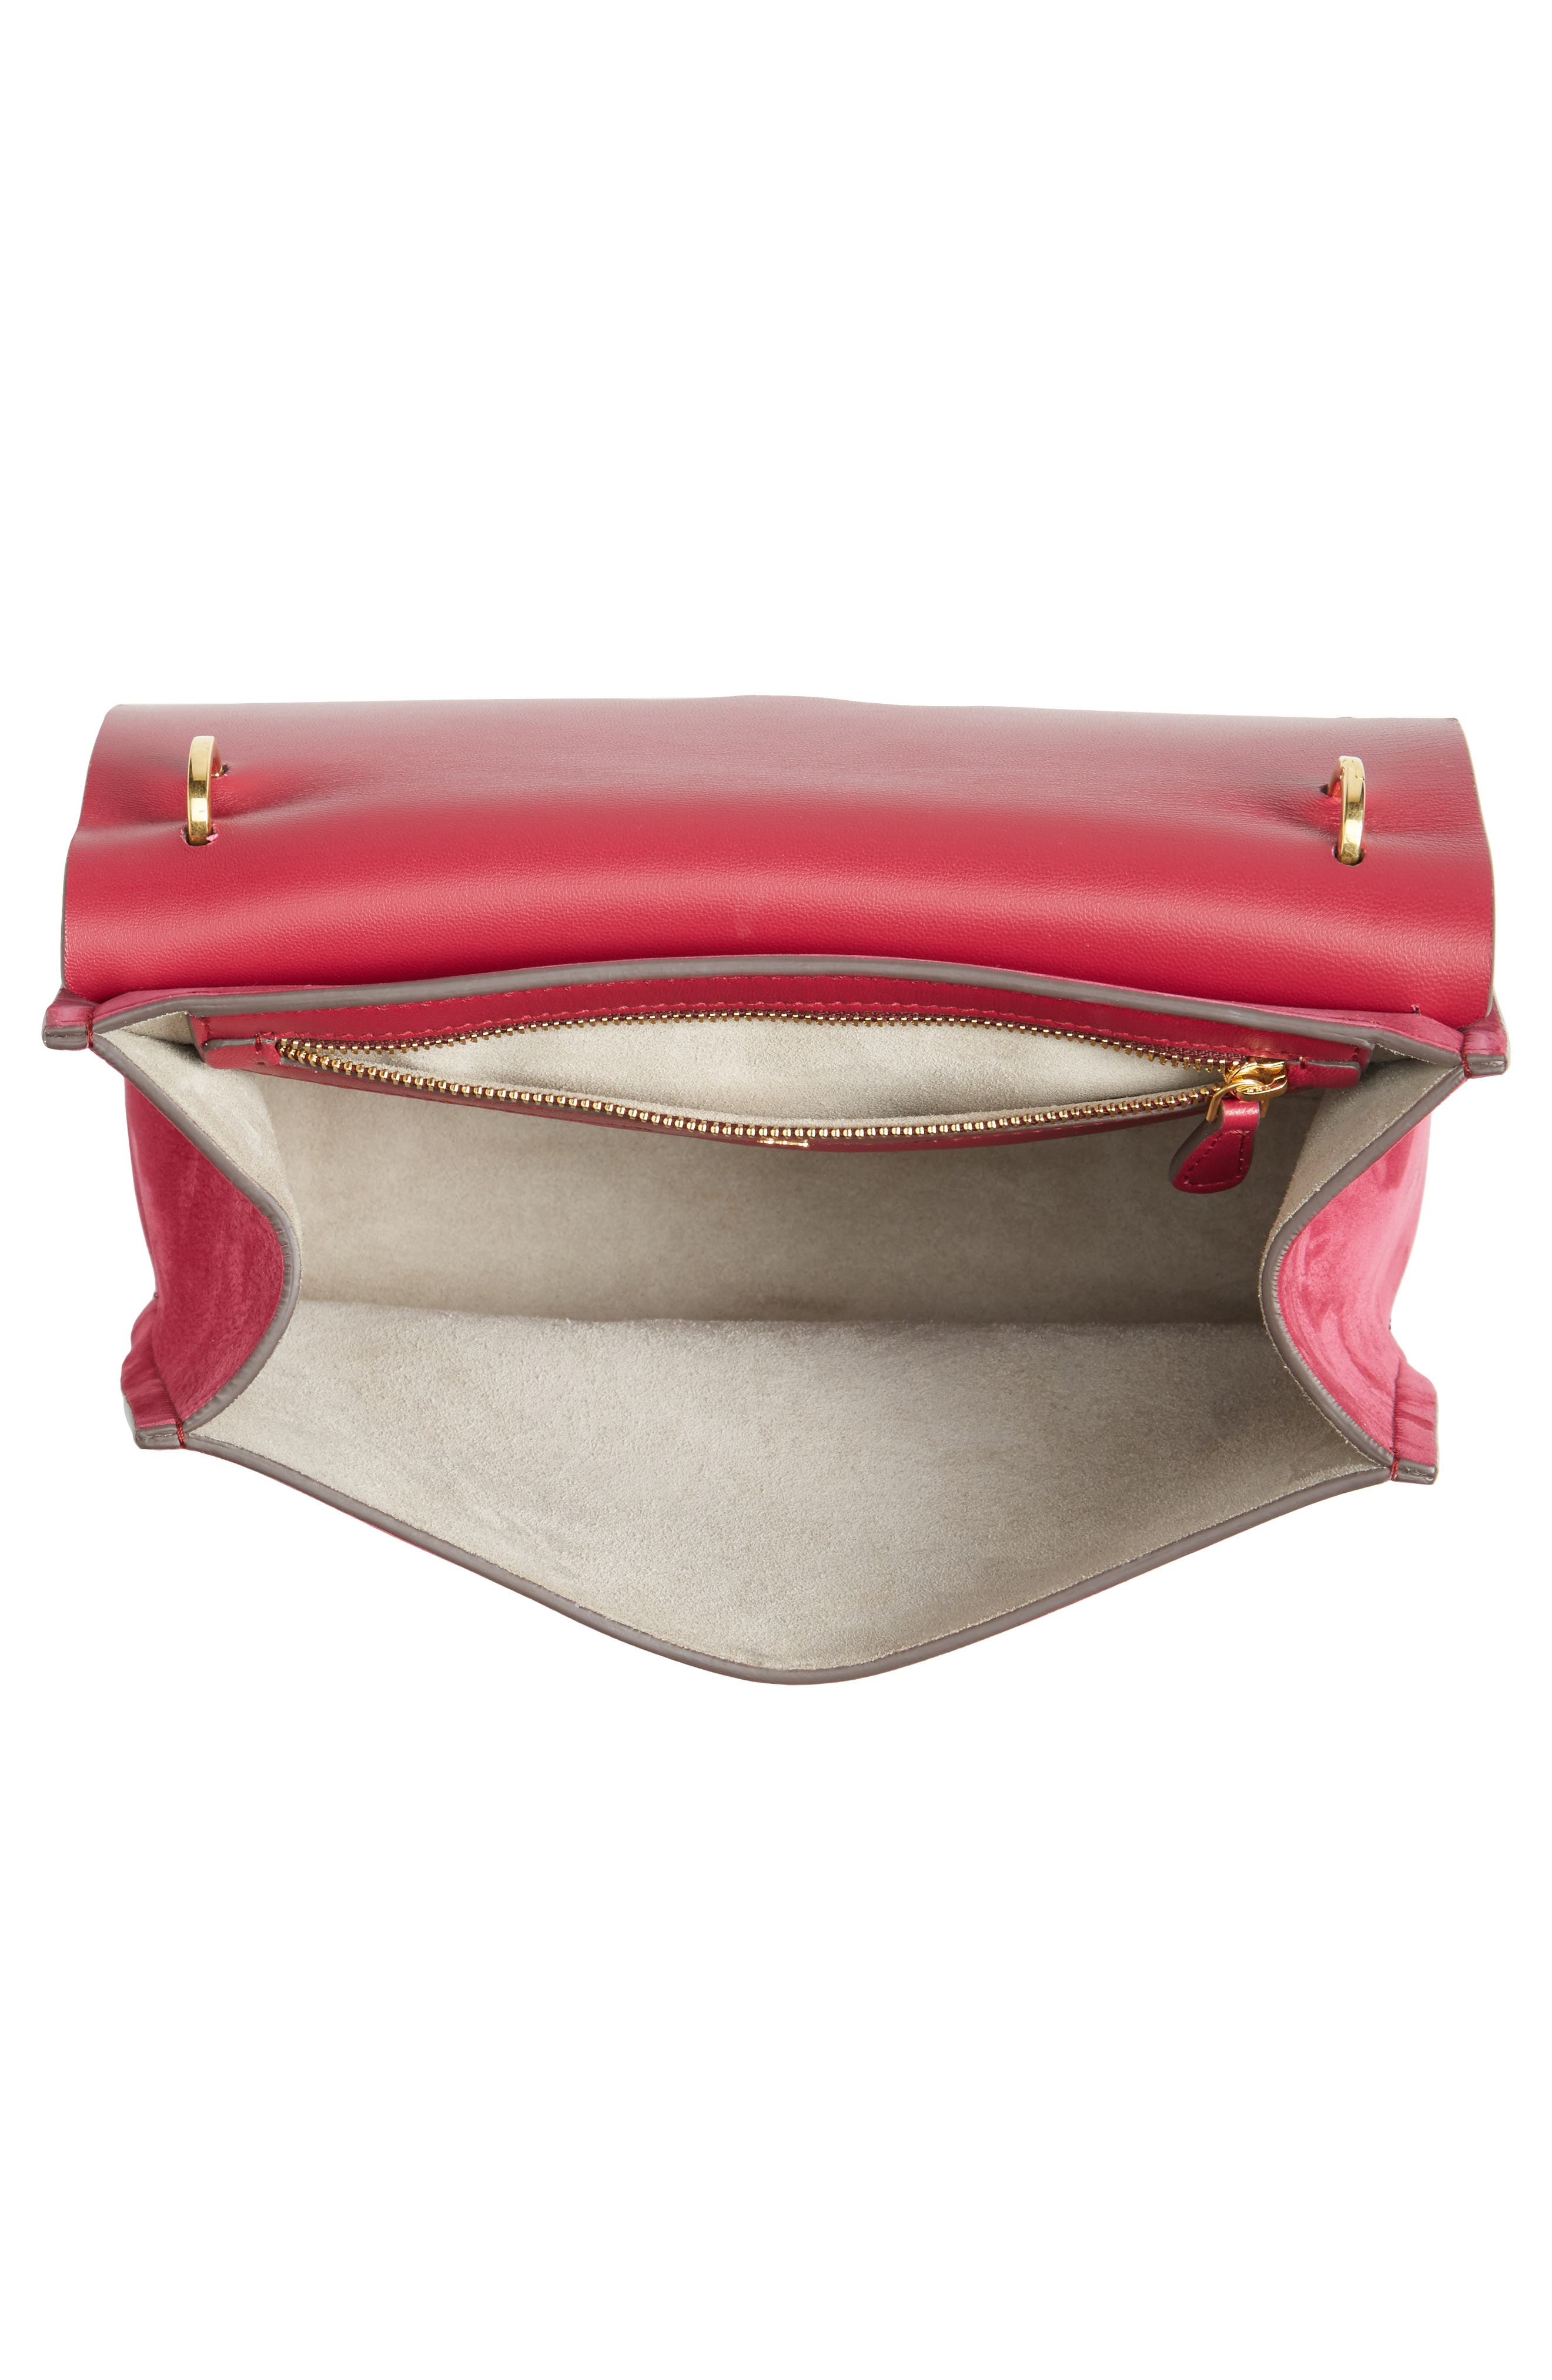 Extra Small Bathhurst Heart Leather Shoulder Bag,                             Alternate thumbnail 4, color,                             Raspberry